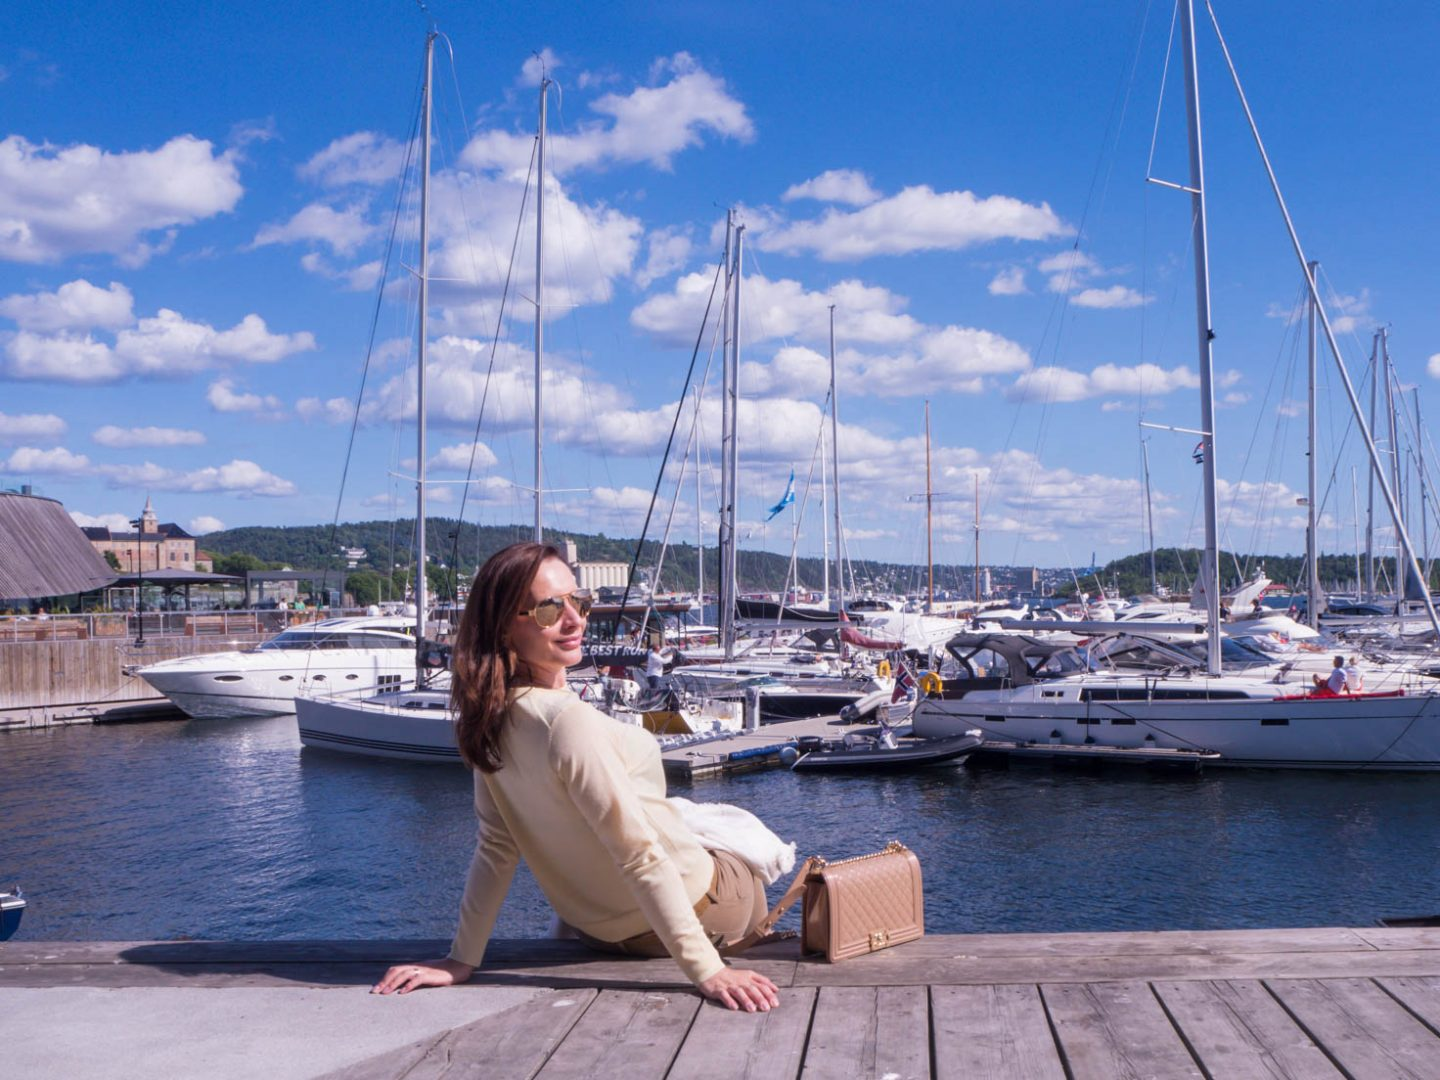 24 hours in Oslo. Here are the 3 must see things.